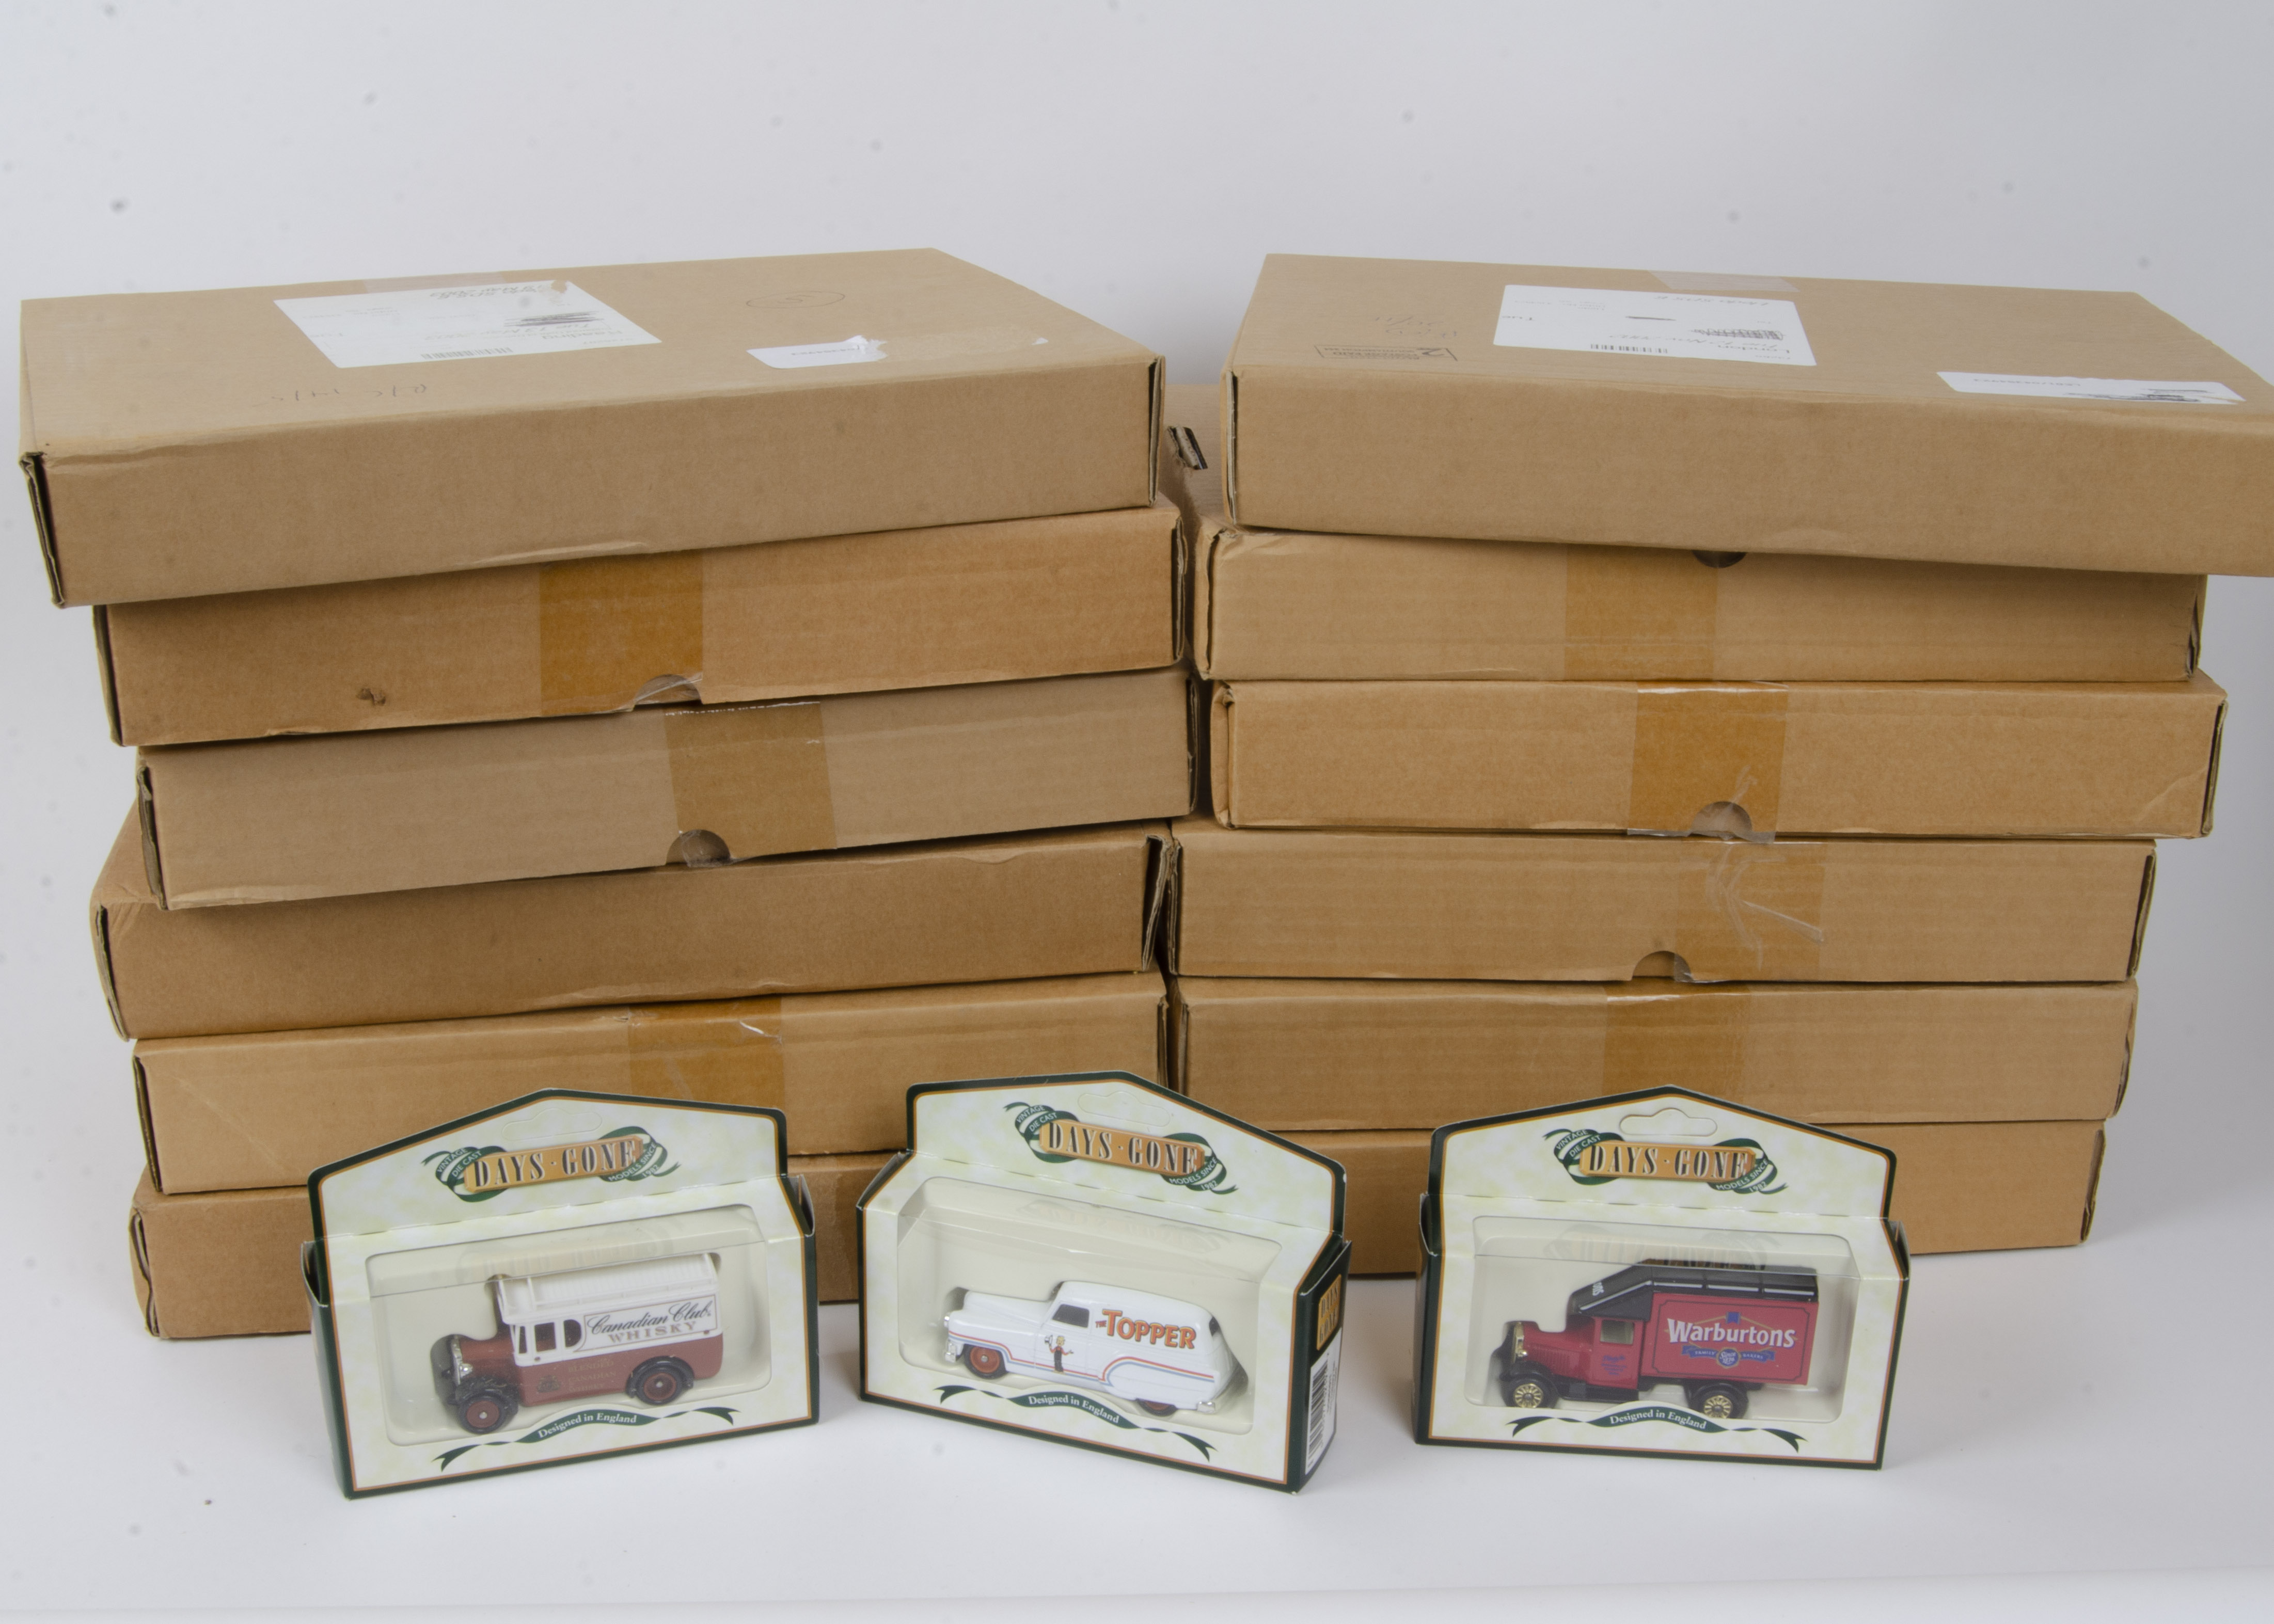 Lledo Days Gone 2000s, a boxed collection including Days Gone (100+), Eddie Stobart (8), Whisky - Image 3 of 3